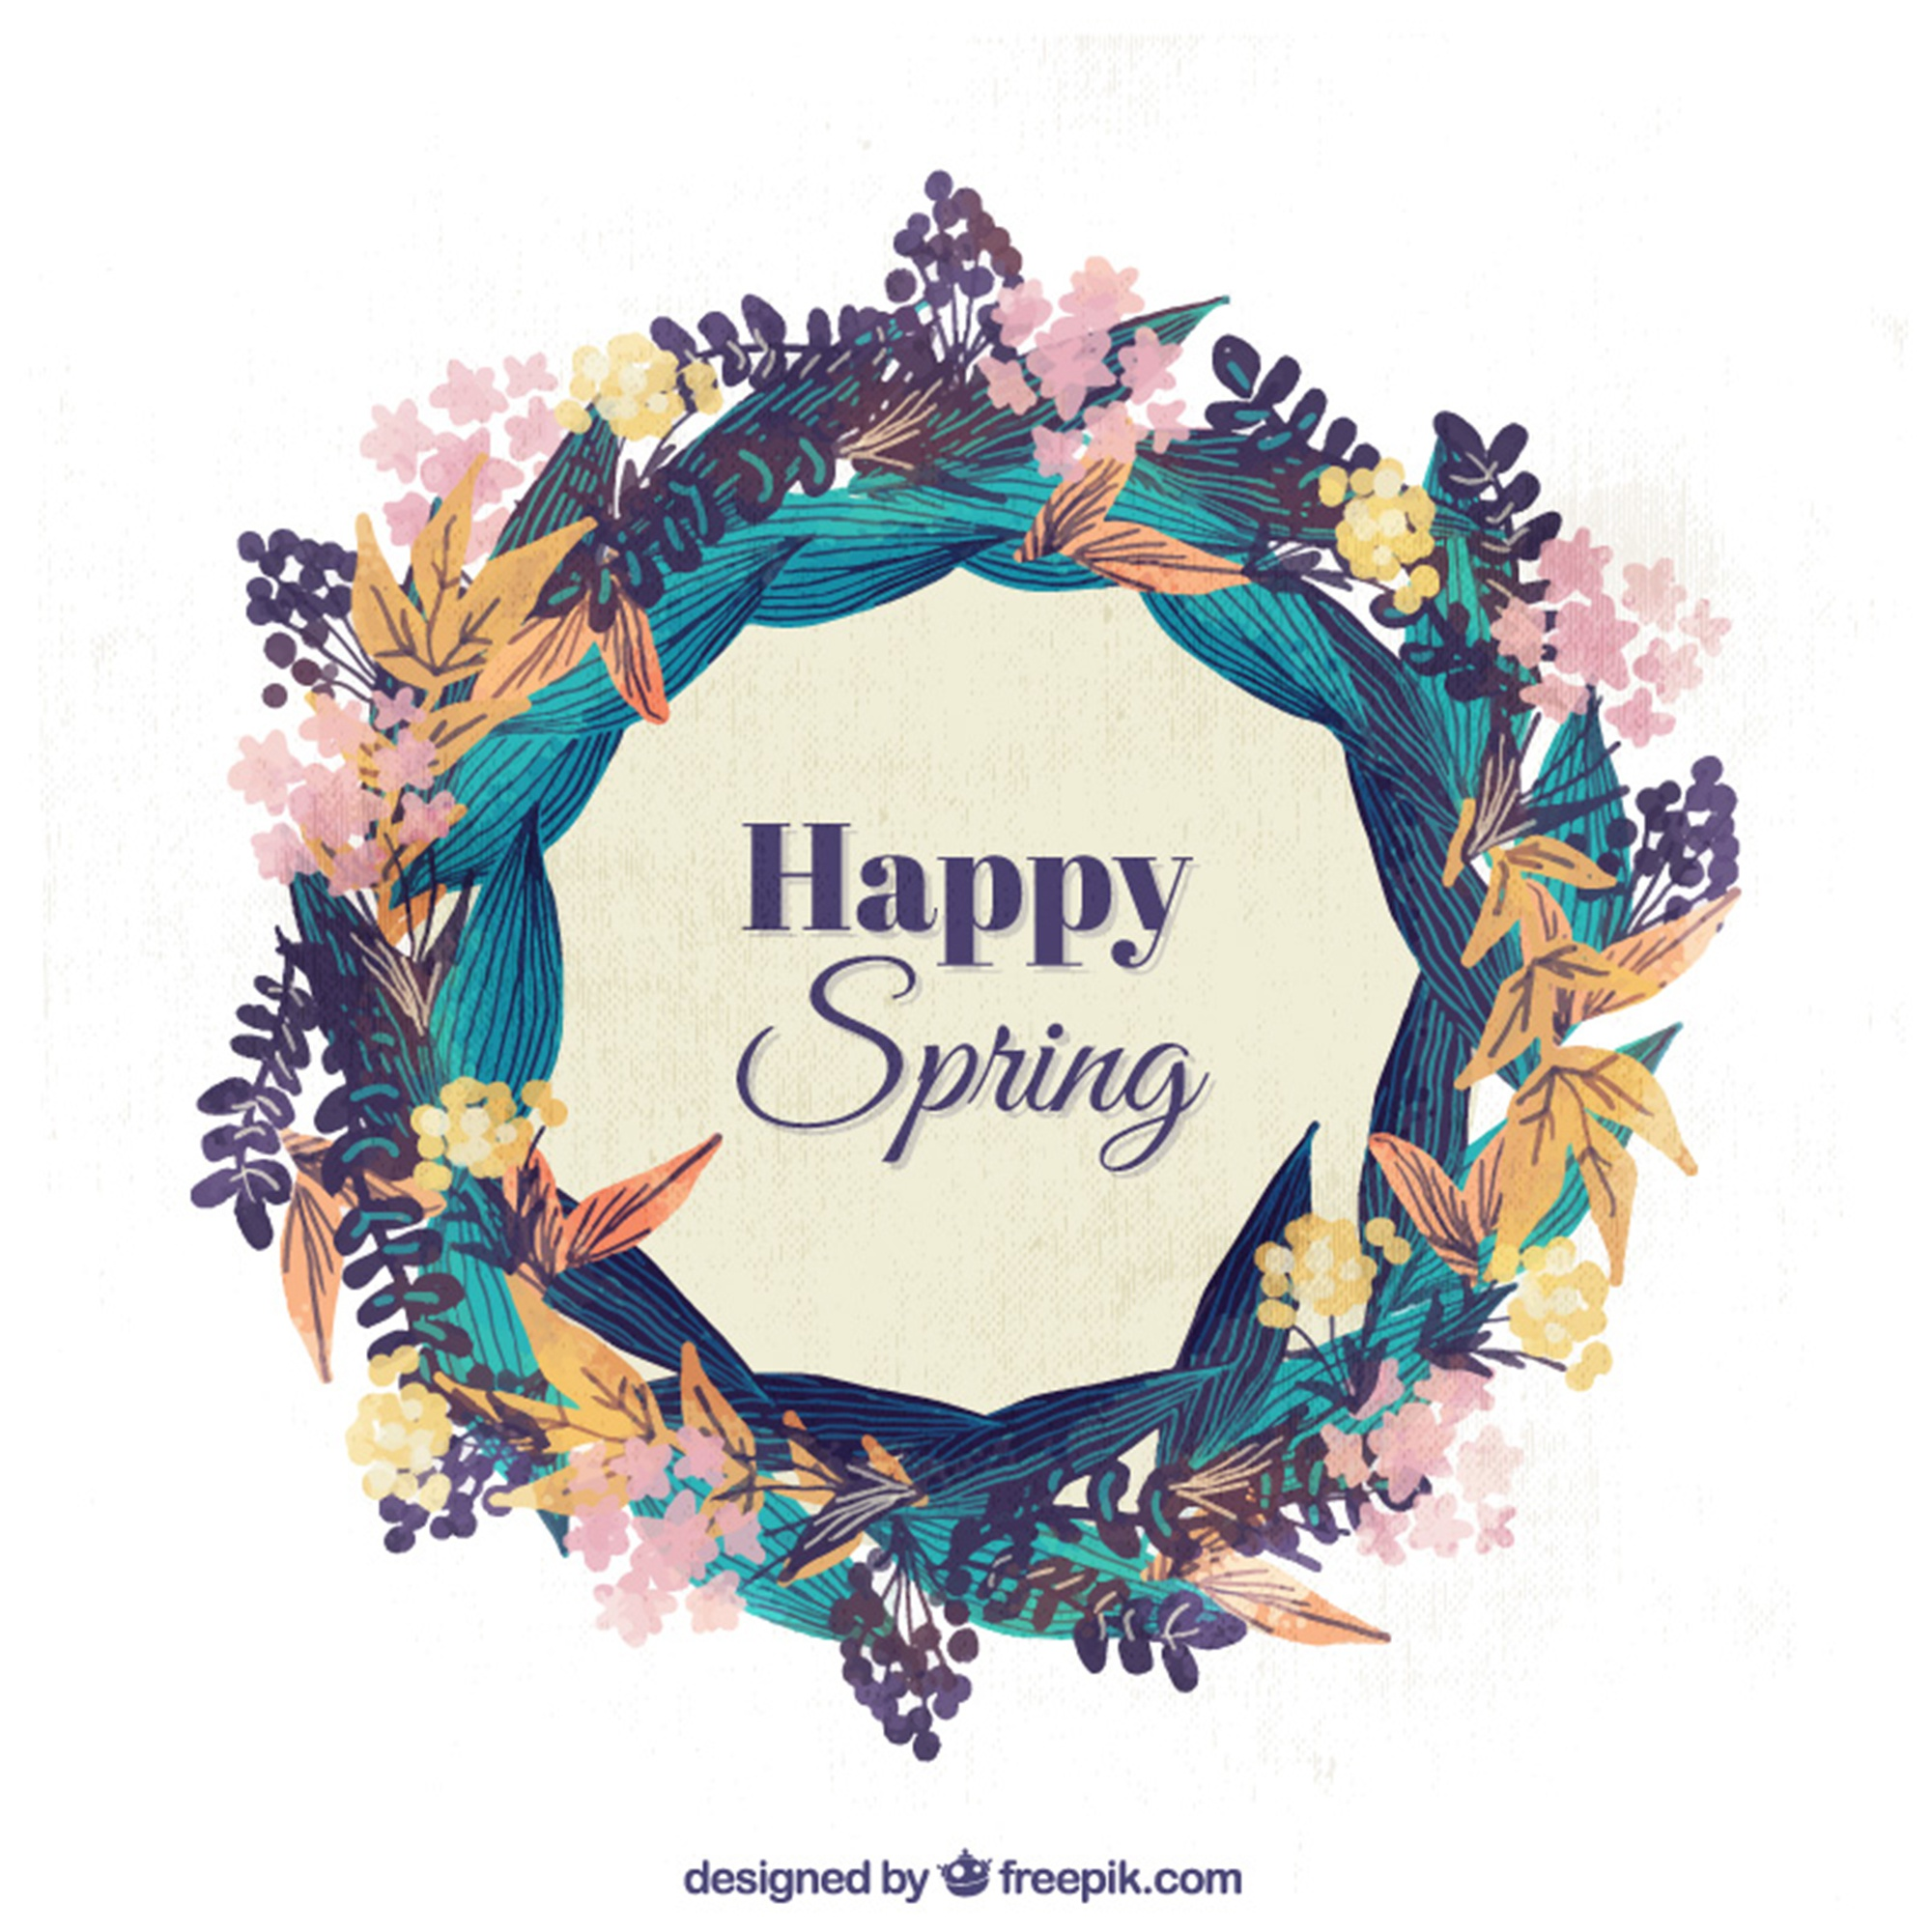 Decorative spring wreath in watercolor style